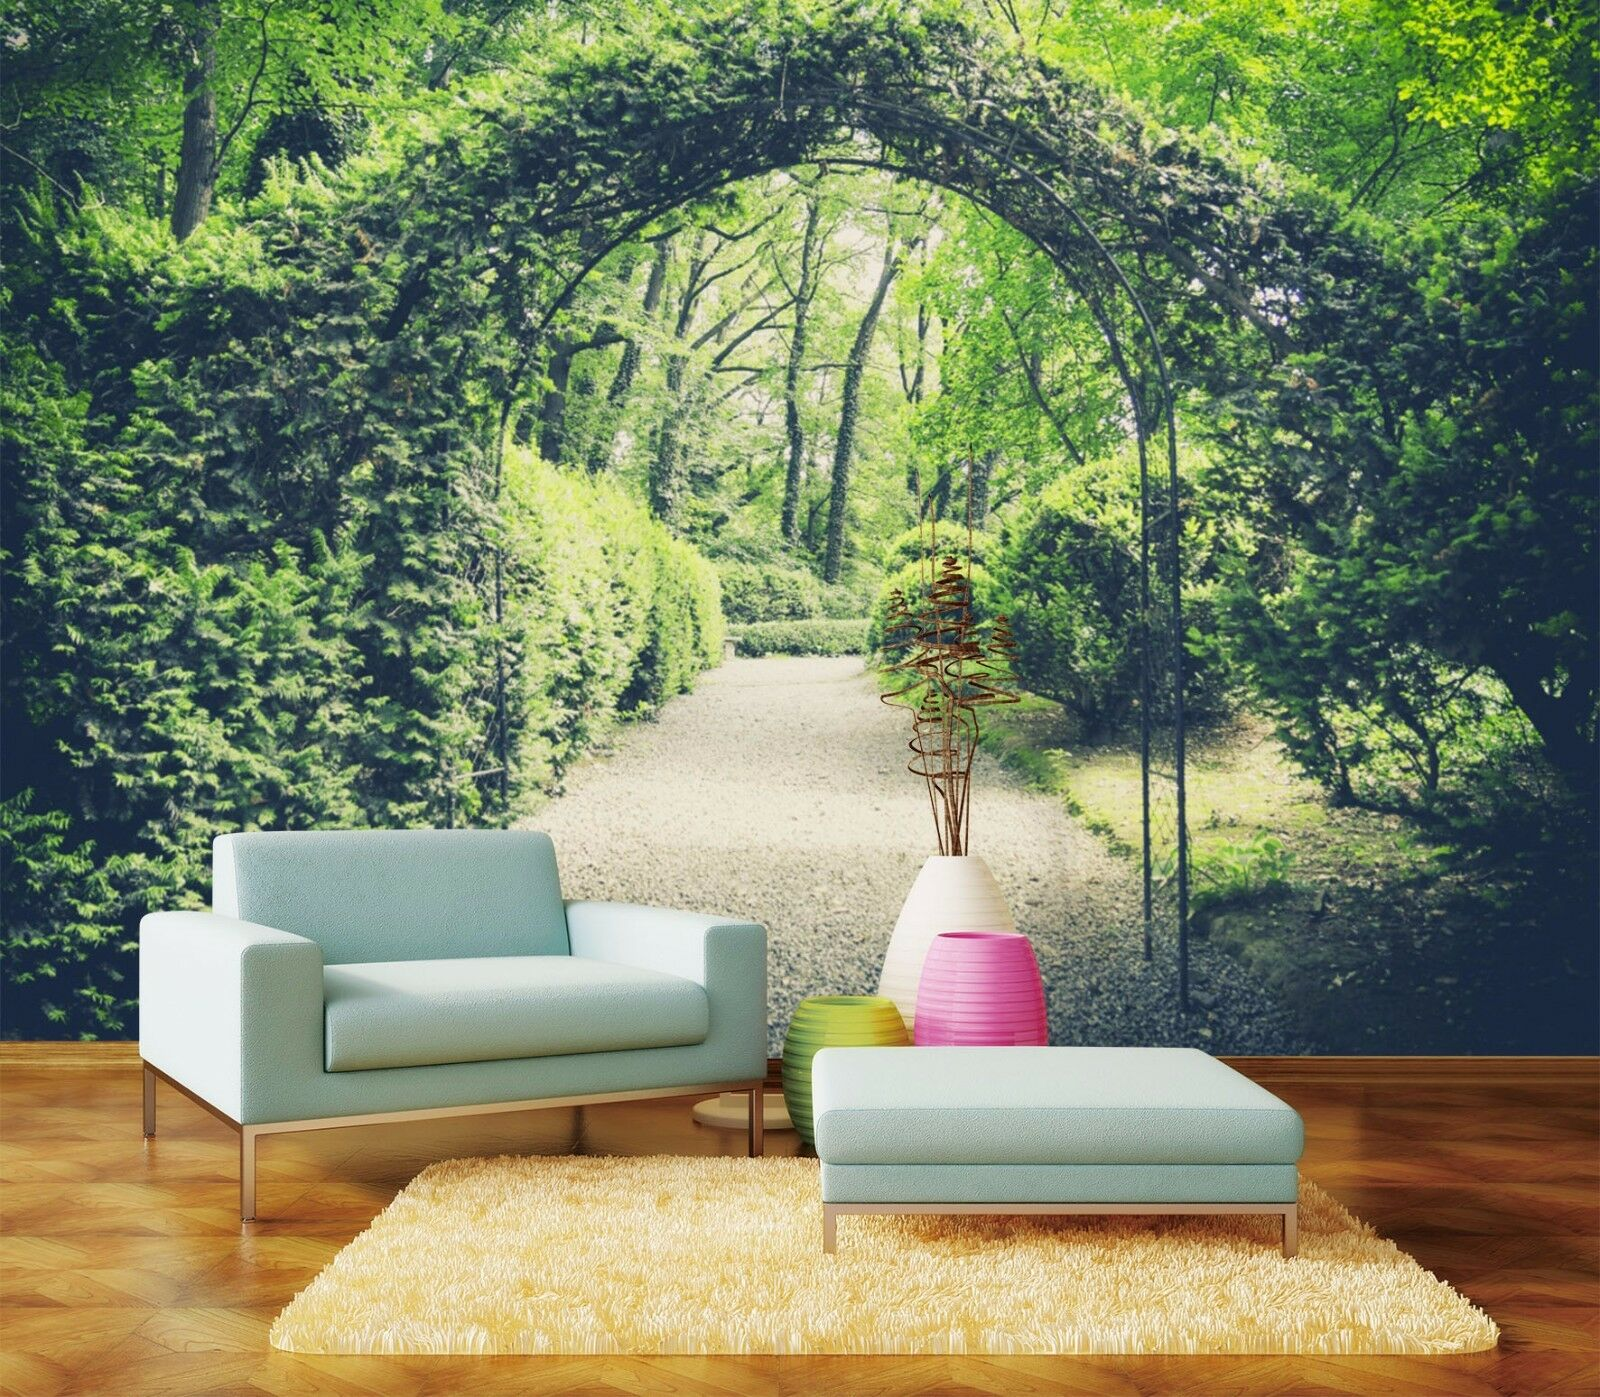 3D Leaves Arch 415 Wallpaper Murals Wall Print Wallpaper Mural AJ WALLPAPER UK